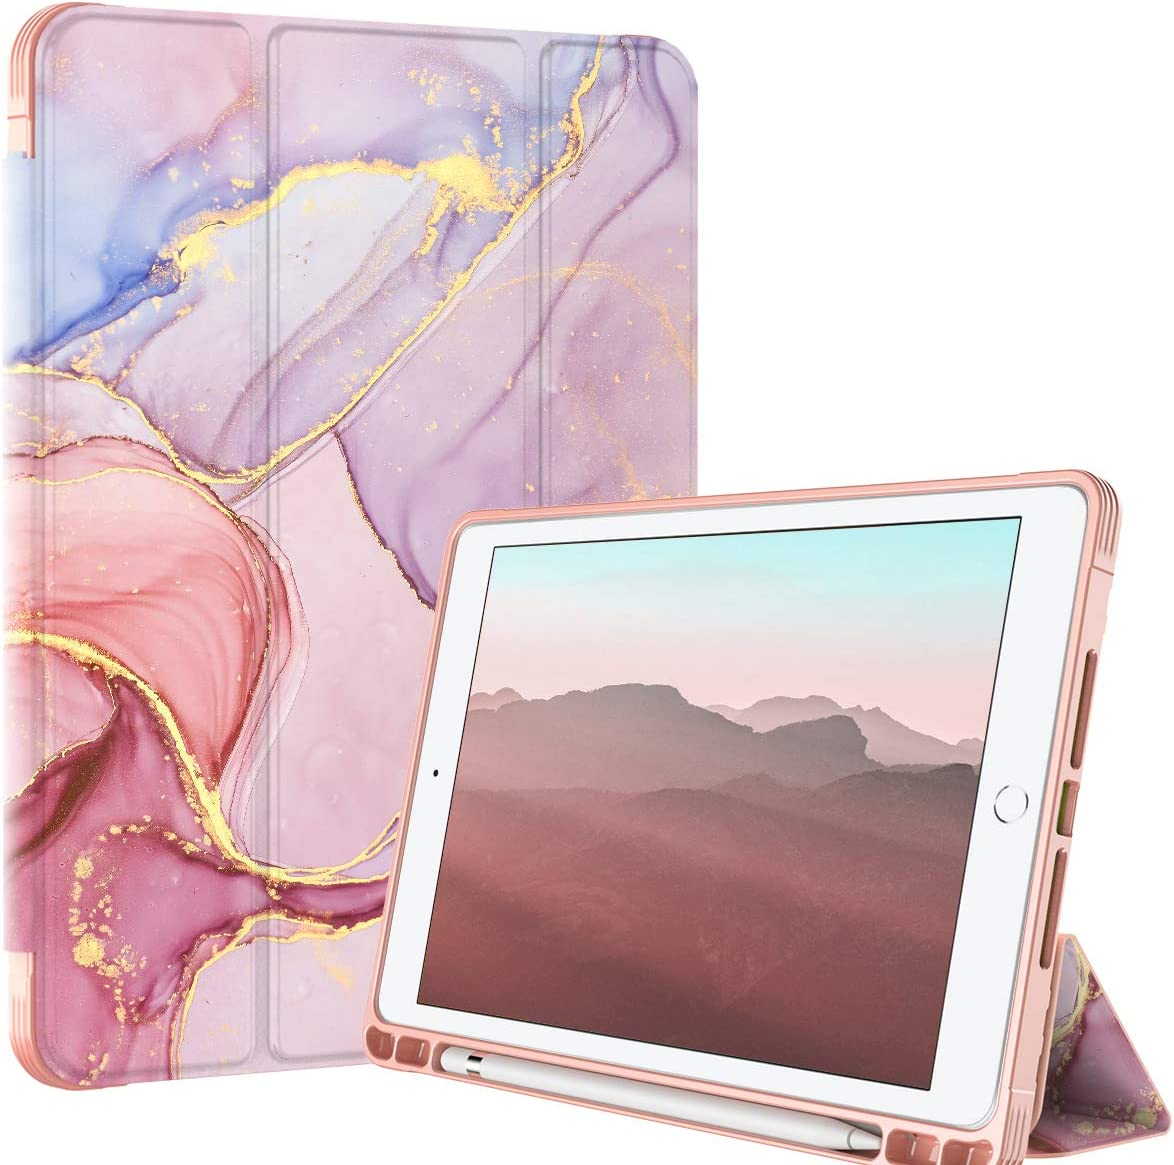 PIXIU Compatible with iPad 9.7 inch Case with Pencil Holder,ipad 6th /5th Generation Cases,Full Body Protective Folio Leather Smart case Cover with Wake/Sleep Feature (Purple Marble)